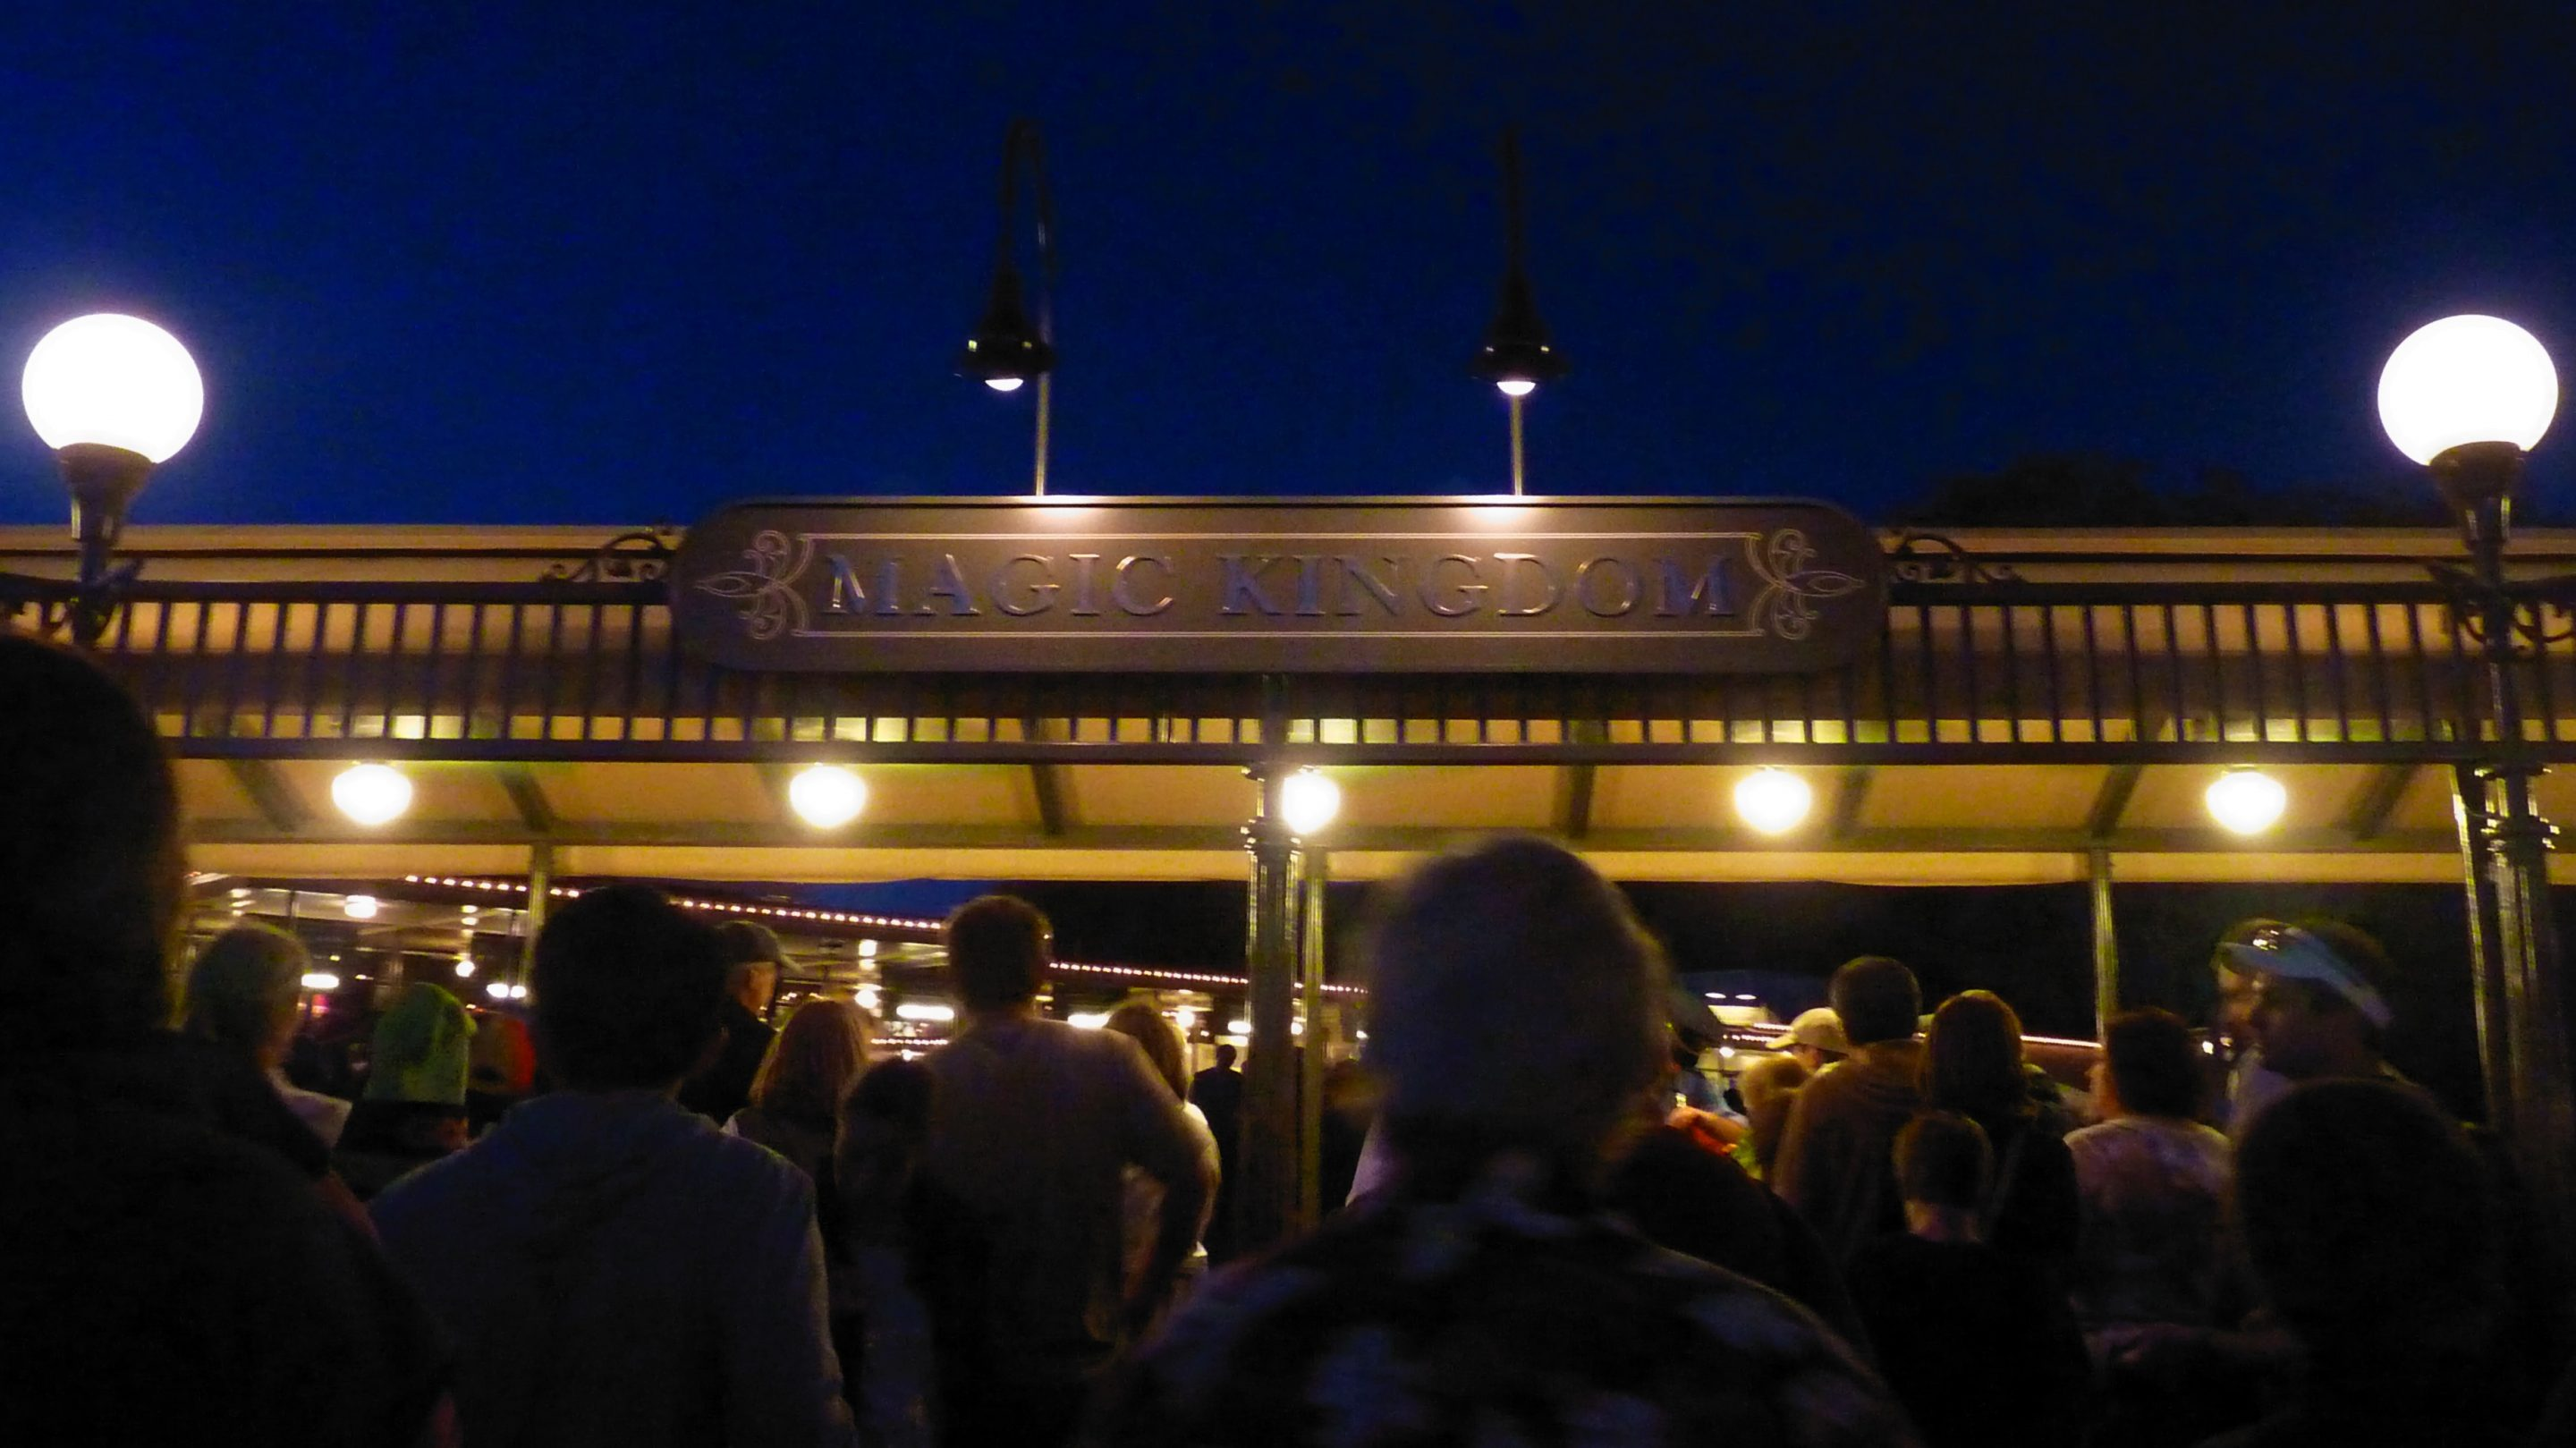 Jud's Disney Picture of the Day: ENTRANCE AT NIGHT